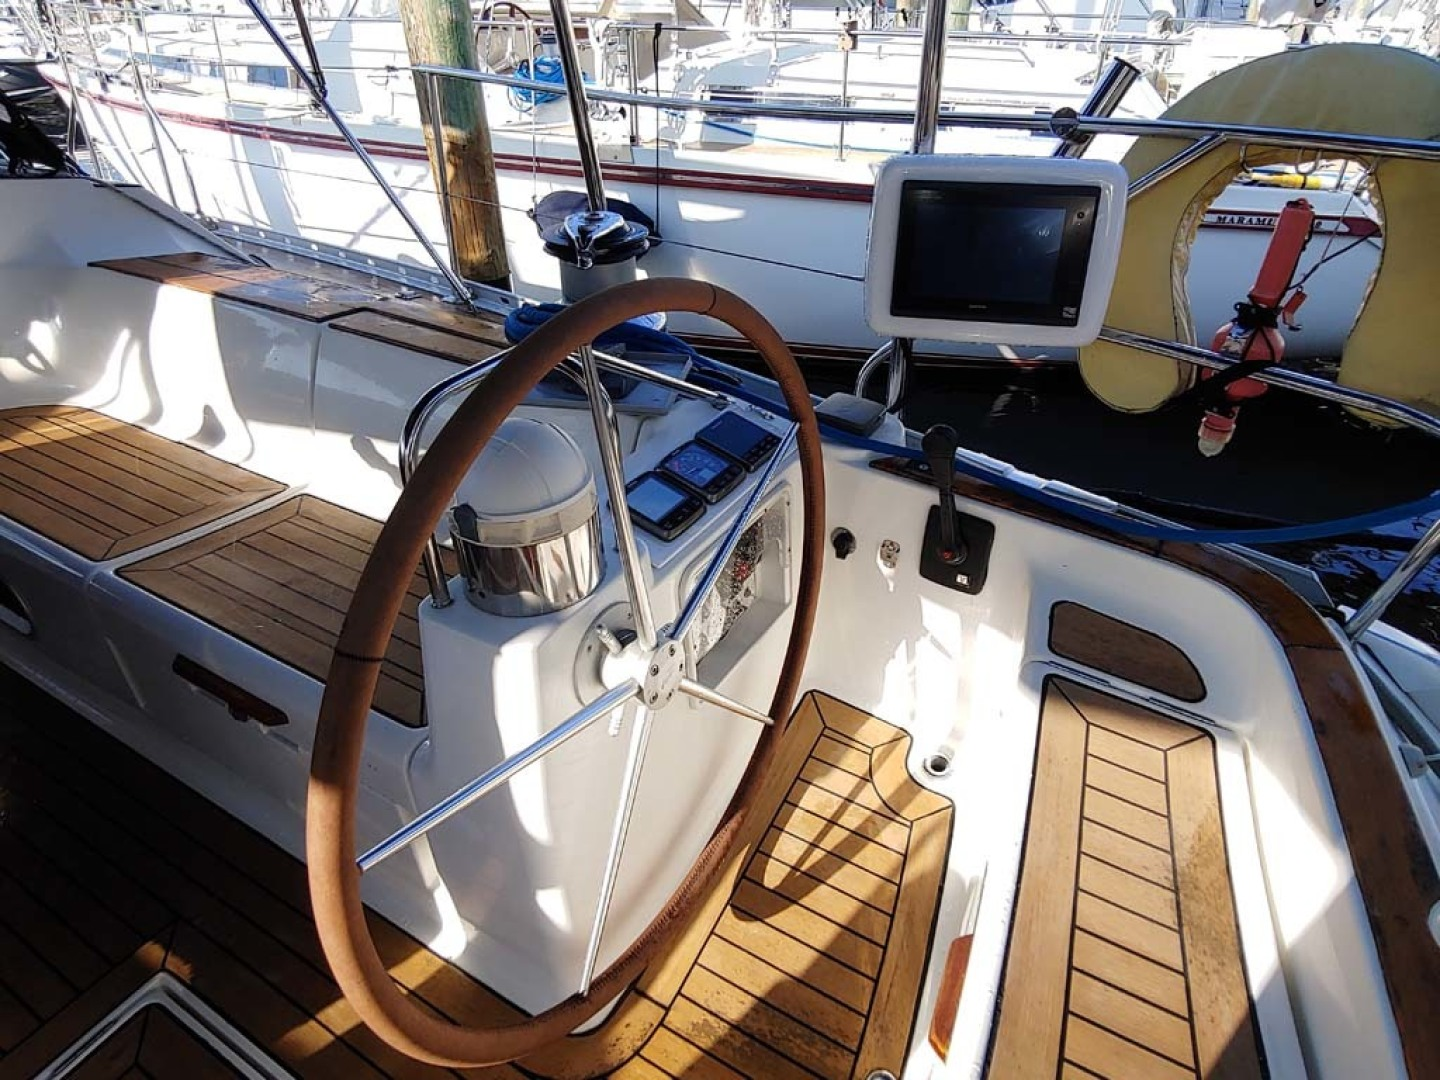 Jeanneau-Sun Odyssey 52.2 2001-Perseverance Hollywood-Florida-United States-Starboard Helm-1631459 | Thumbnail